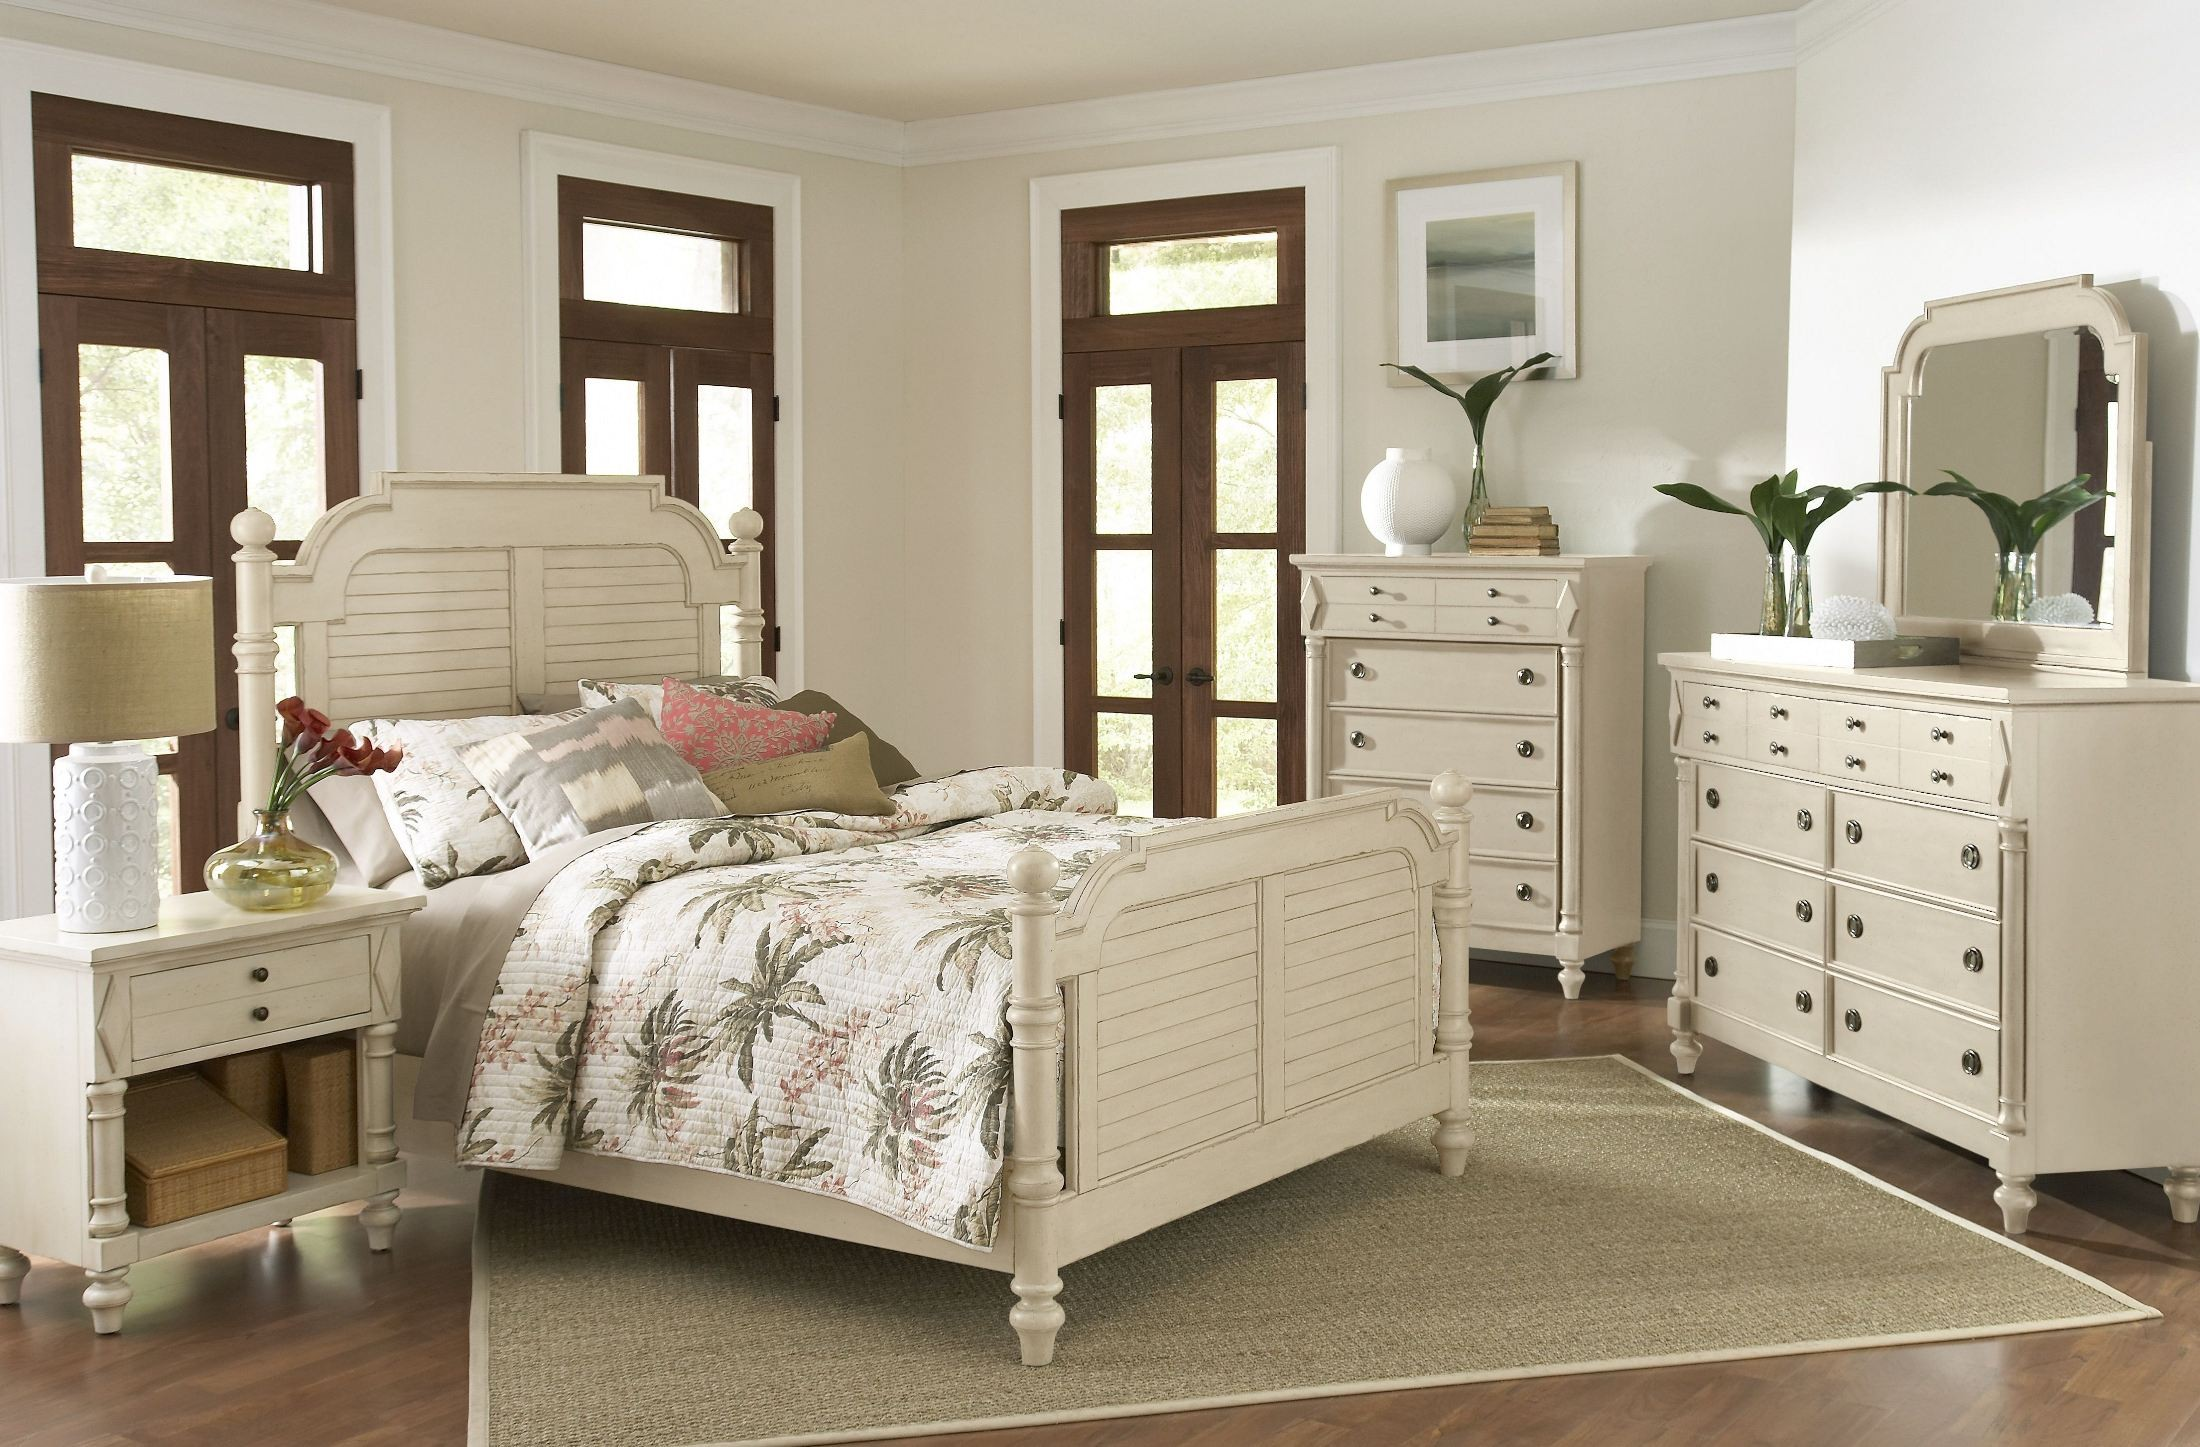 Woodhaven antique white poster bedroom set from largo - White vintage bedroom furniture sets ...